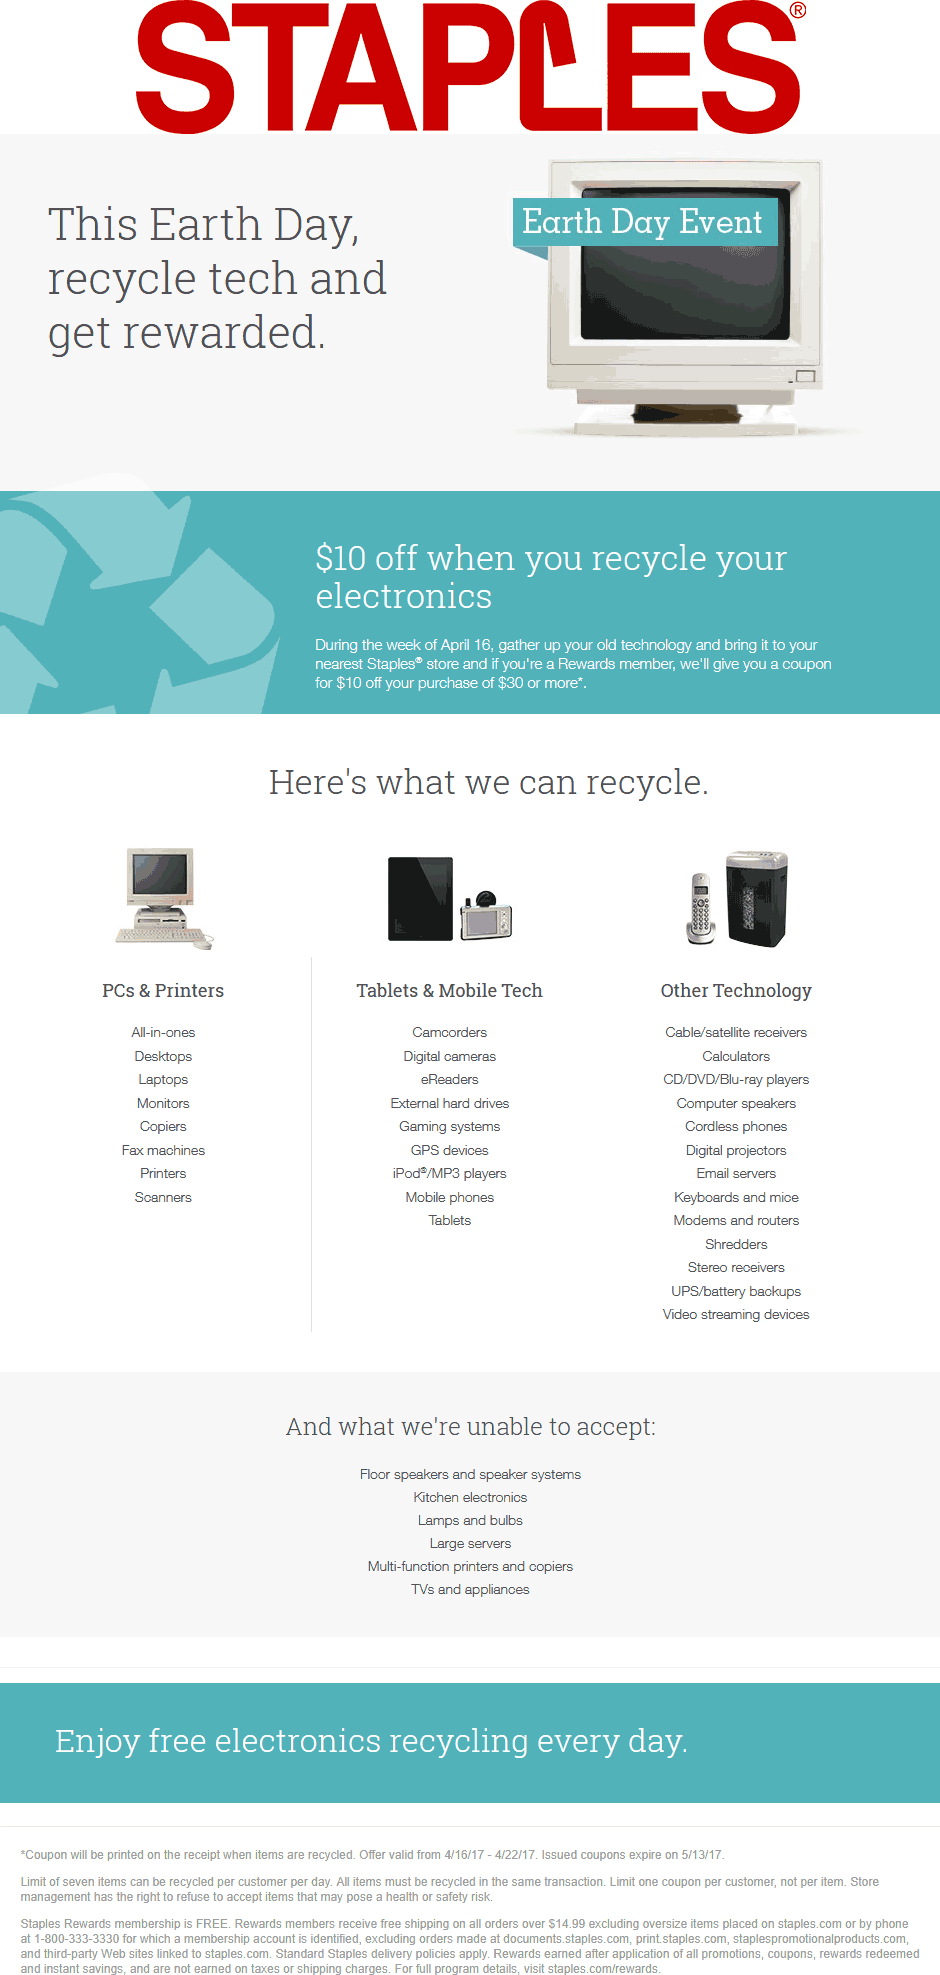 Staples Coupon May 2018 Bring in old electronics to recycle for a $10 off $30 coupon at Staples